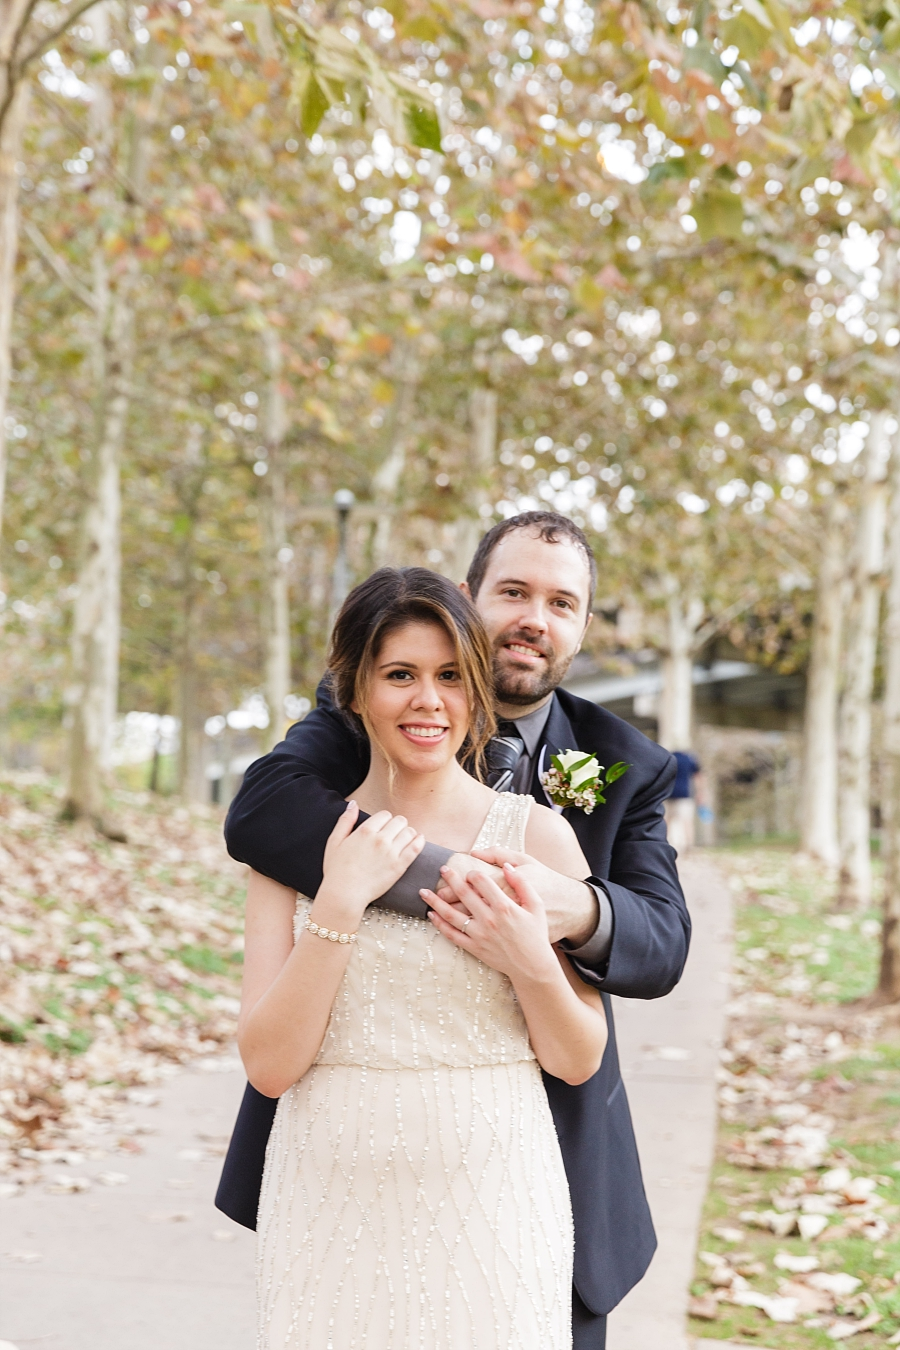 Stacy-Anderson-Photography-Houston-Courthouse-Vic-Anthony-Wedding-Photographer_0018.jpg